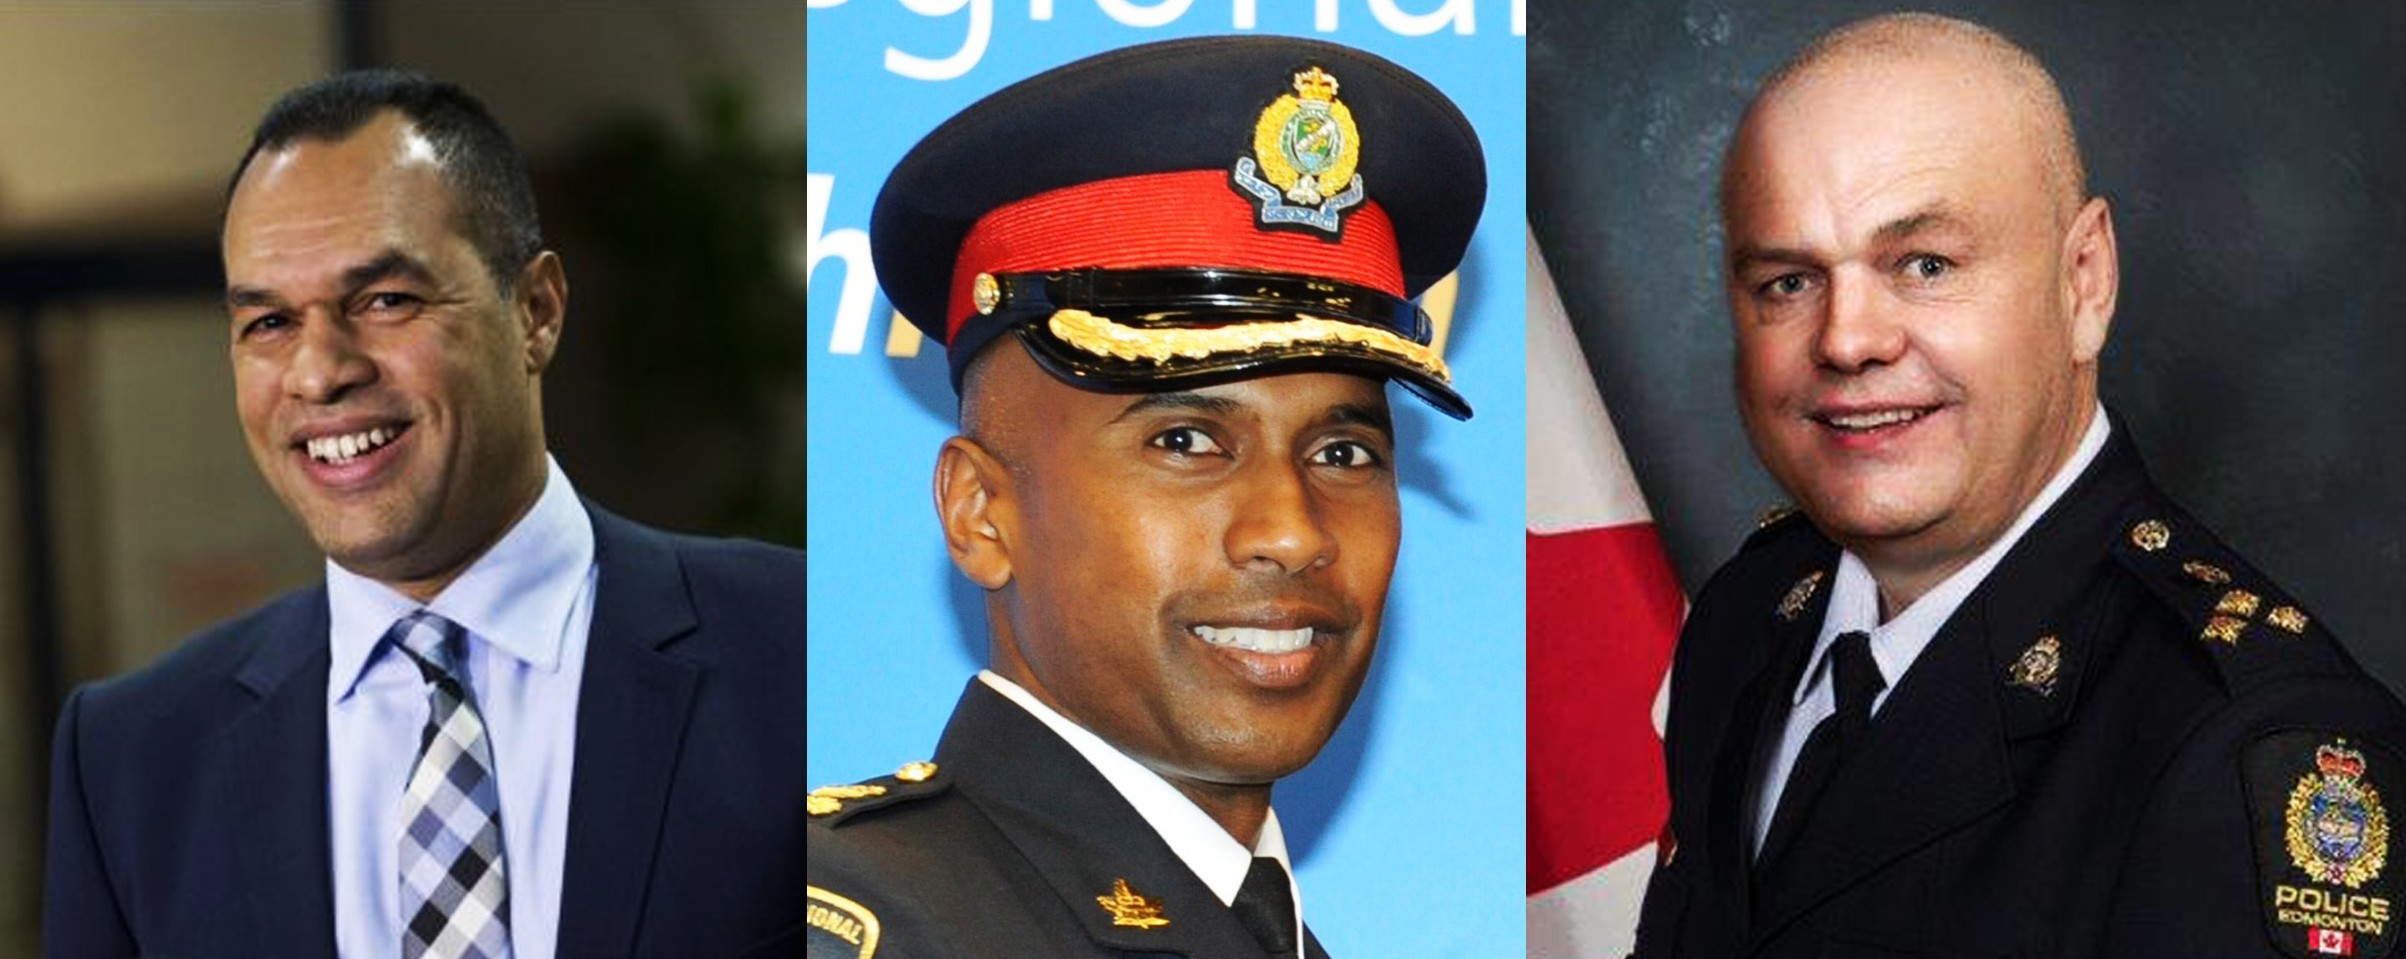 Changing of the guard: trio of new police chiefs has power to modernize the course of policing in Canada